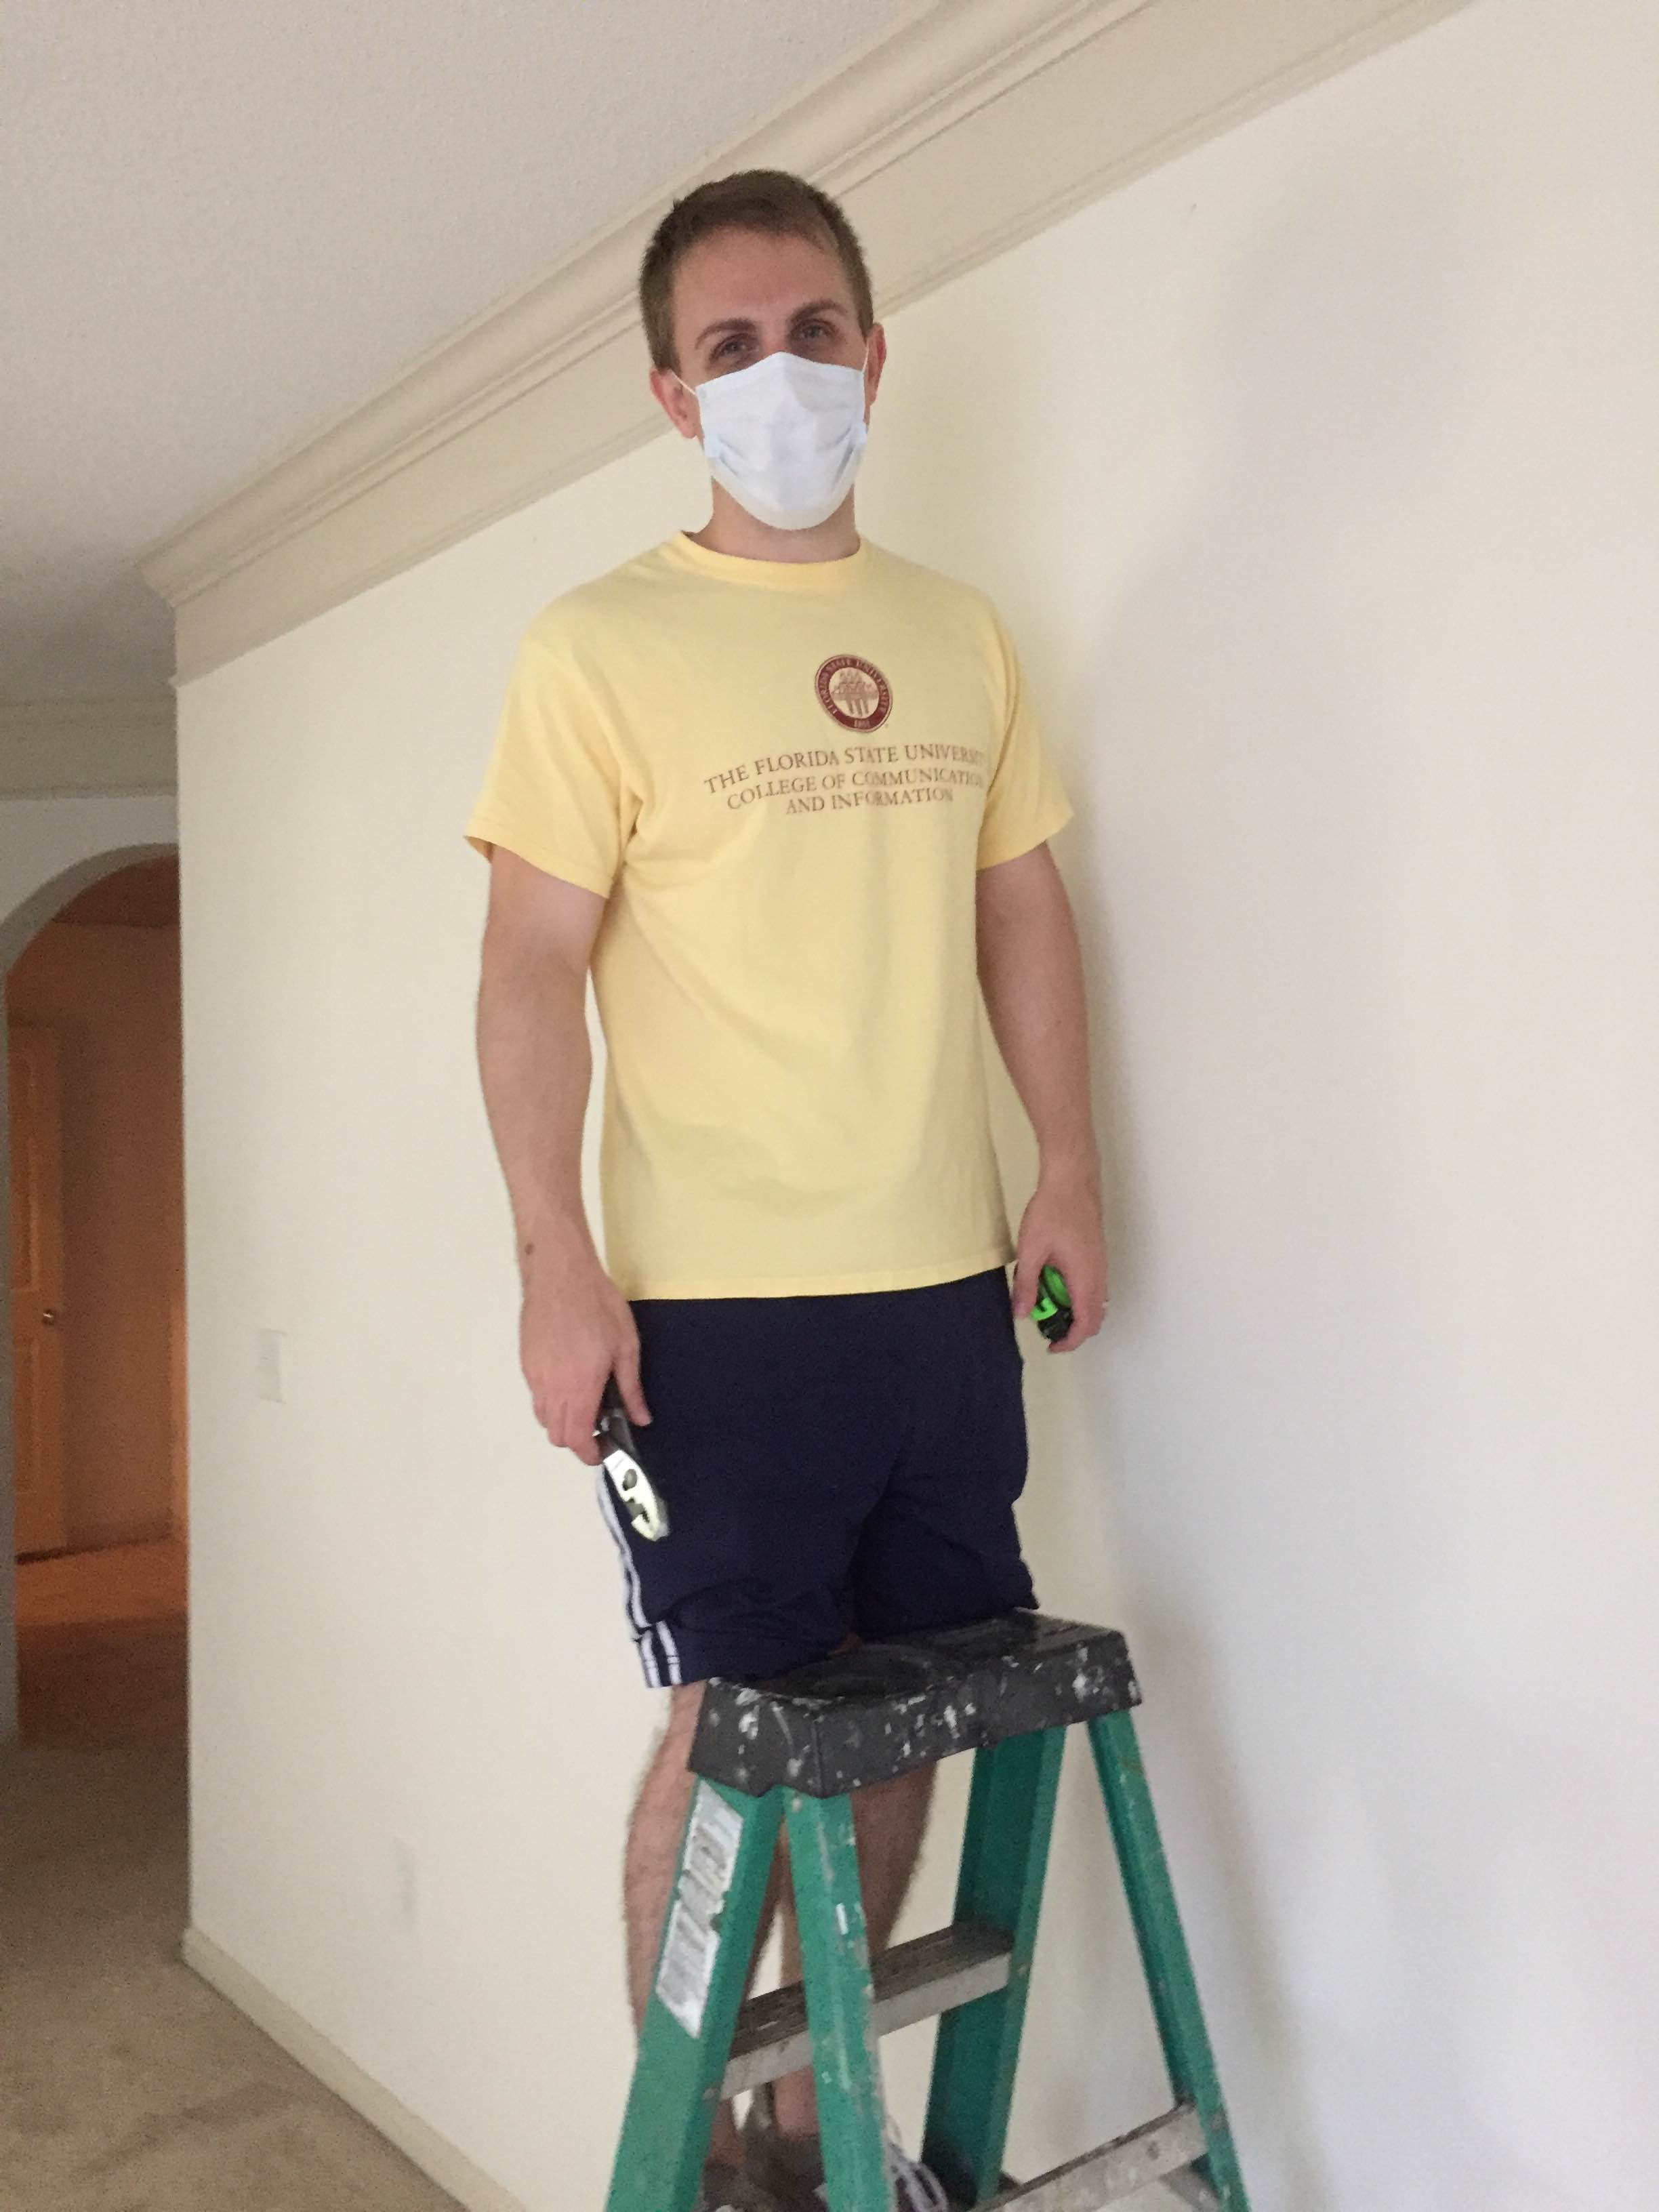 Our friends and family just showed us again how amazing they are. They moved us, painted our house and did everything on the tightest time schedule.